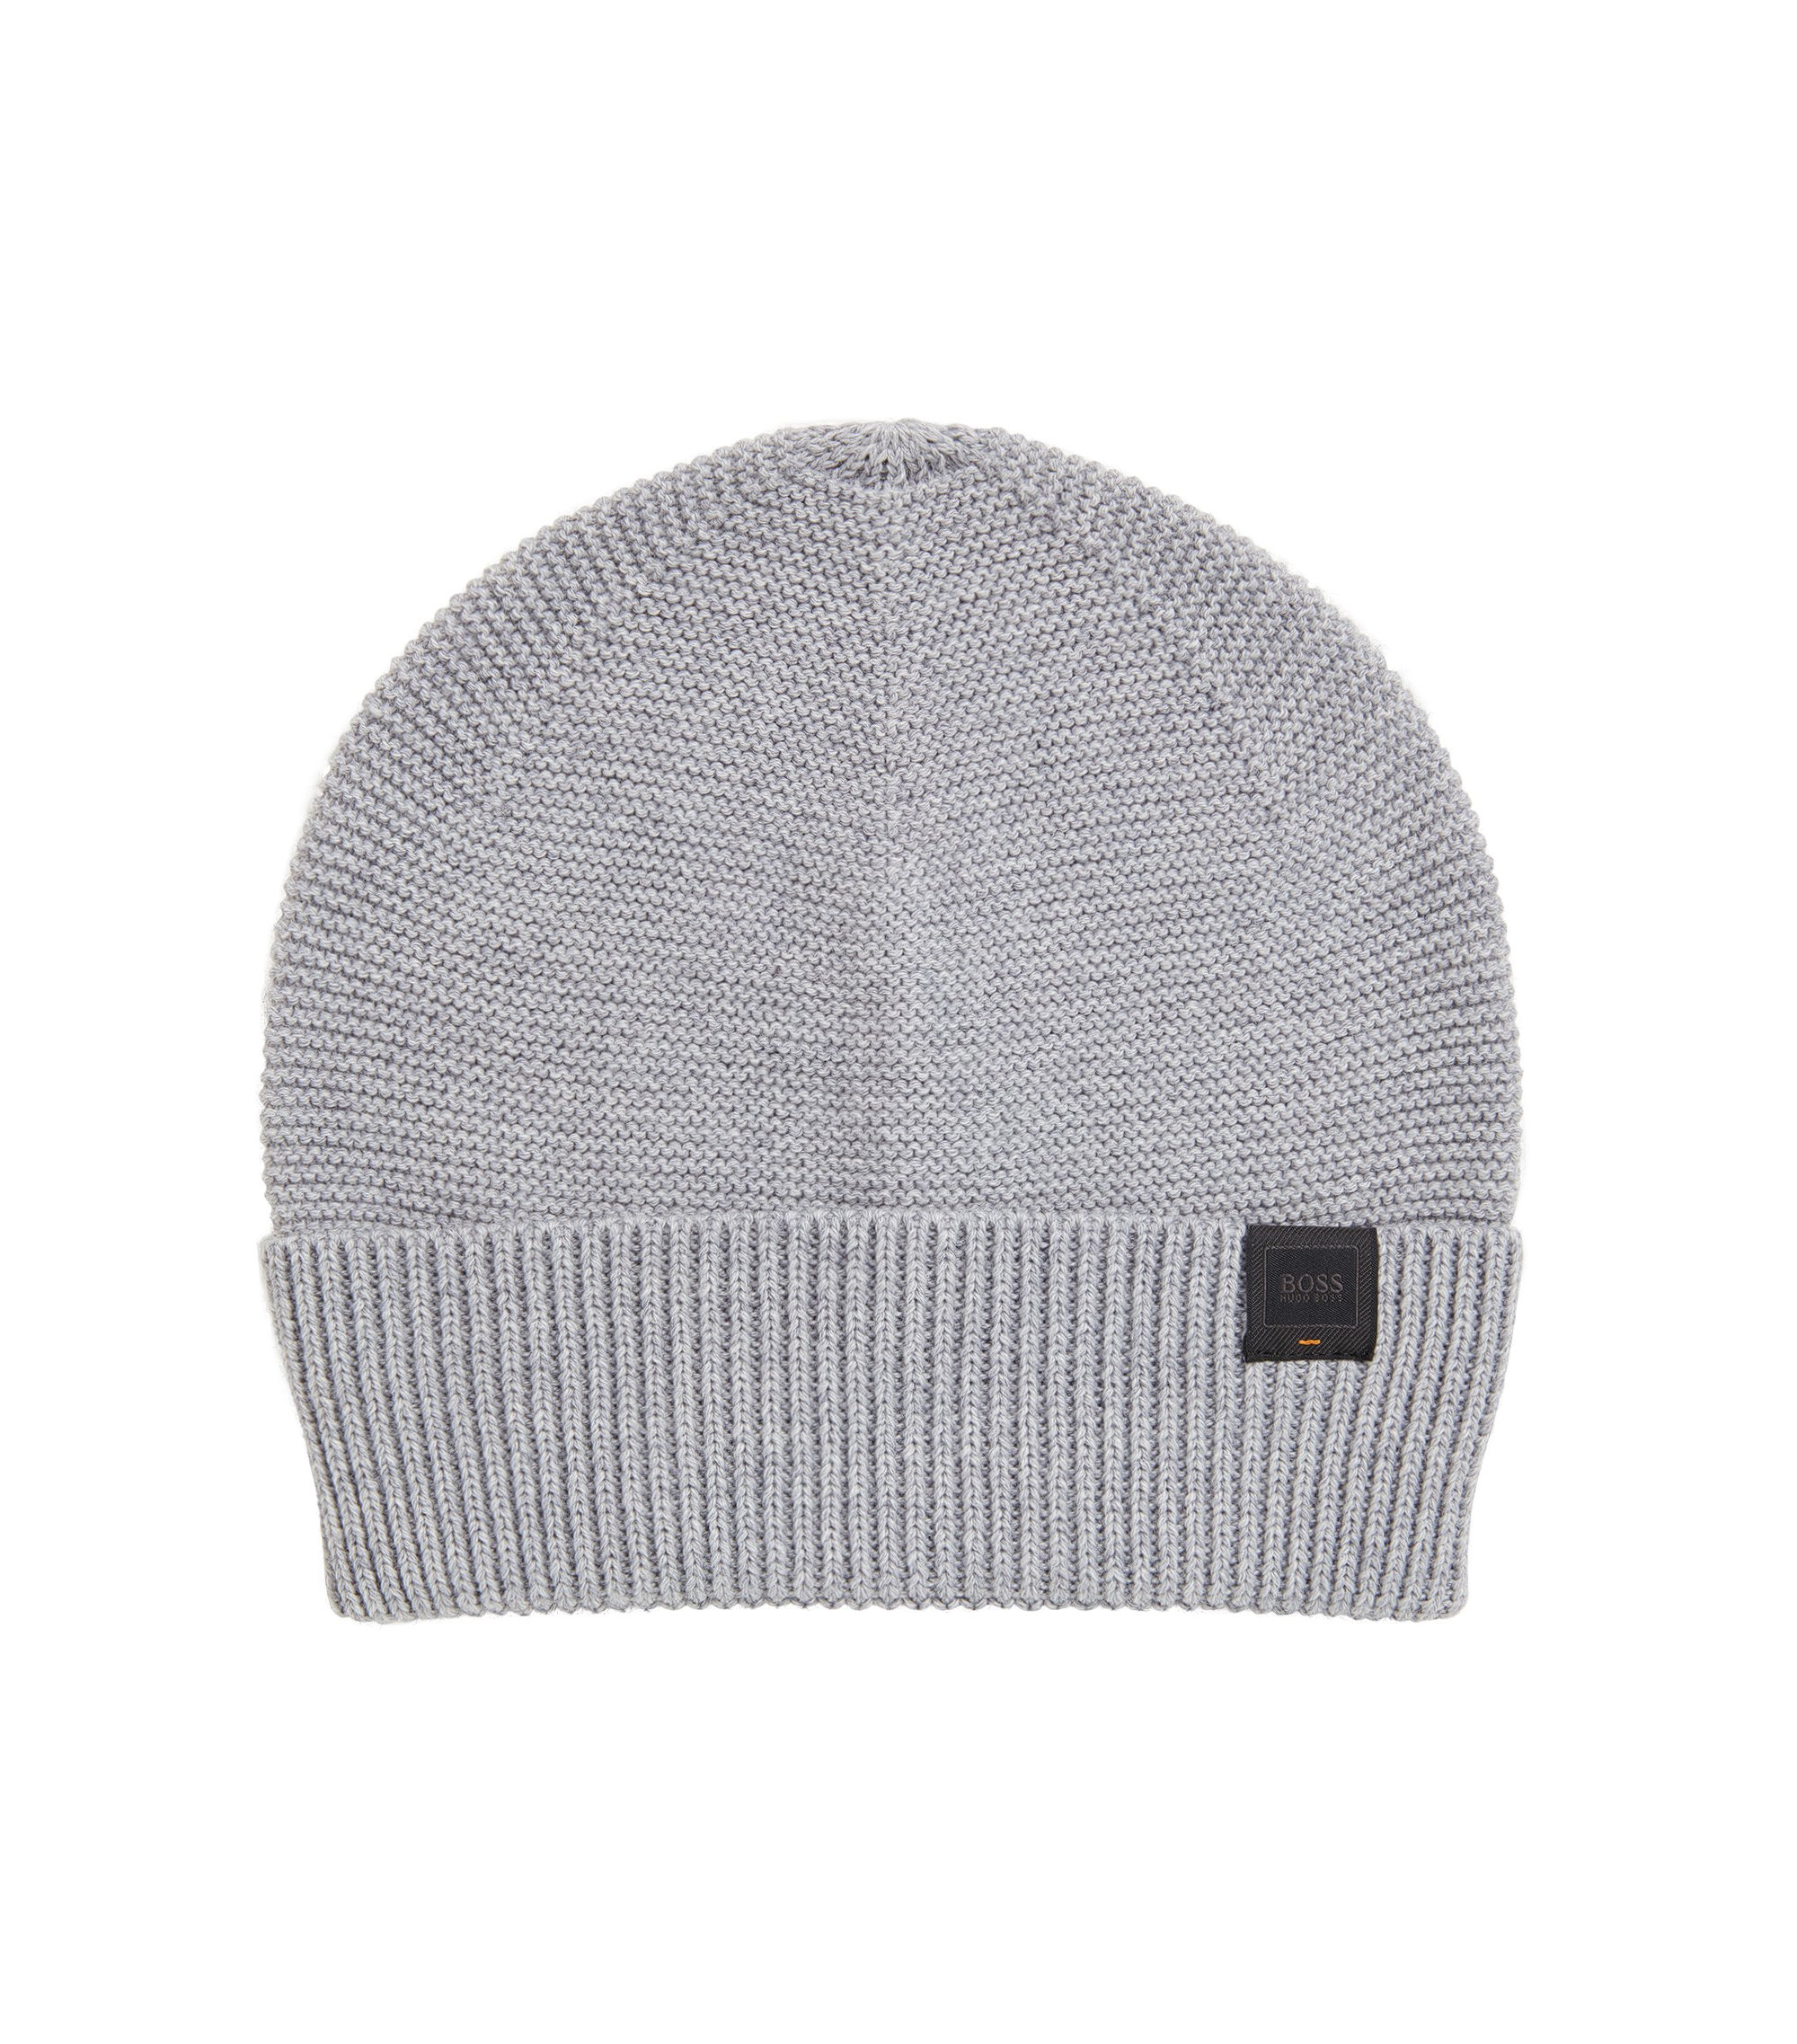 Knitted beanie hat with woven logo label, Light Grey